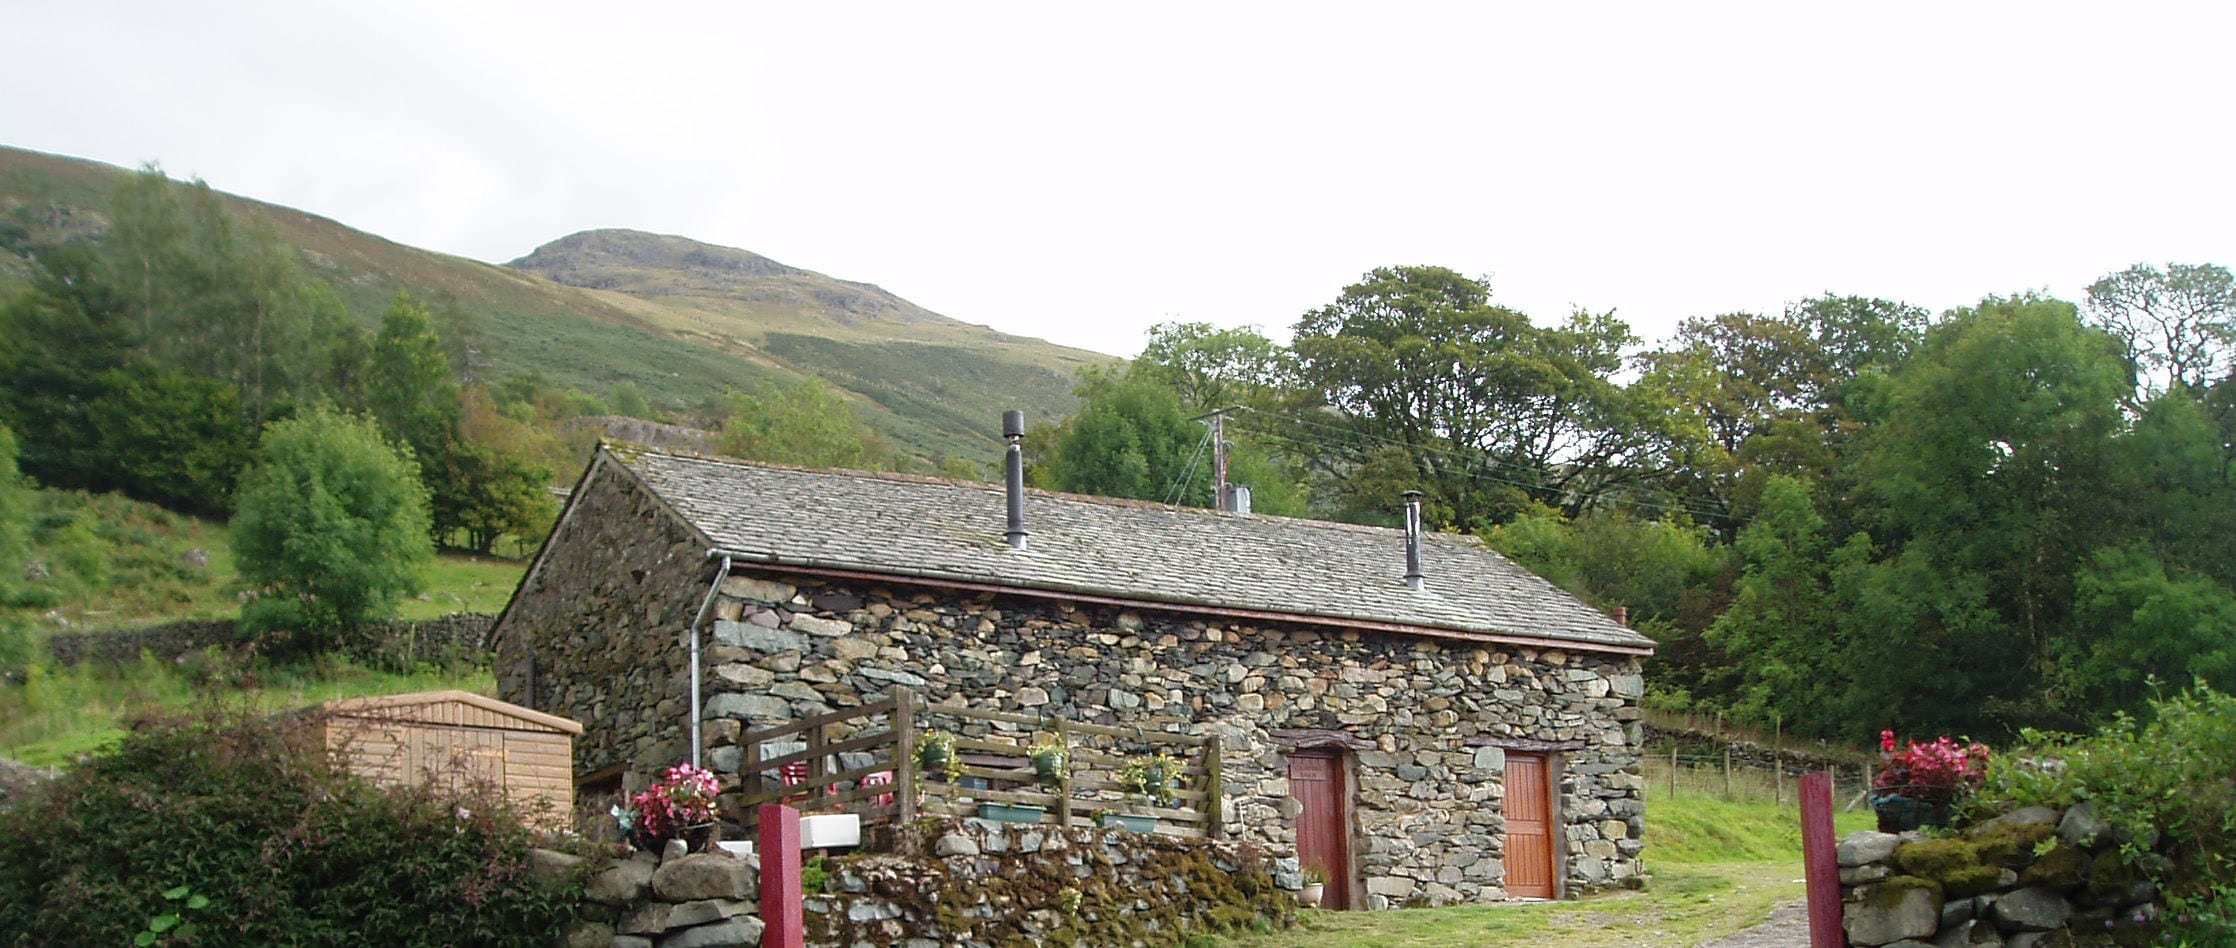 Fisher Gill Camping Barn ideal for DofE expeditions in the Lake District